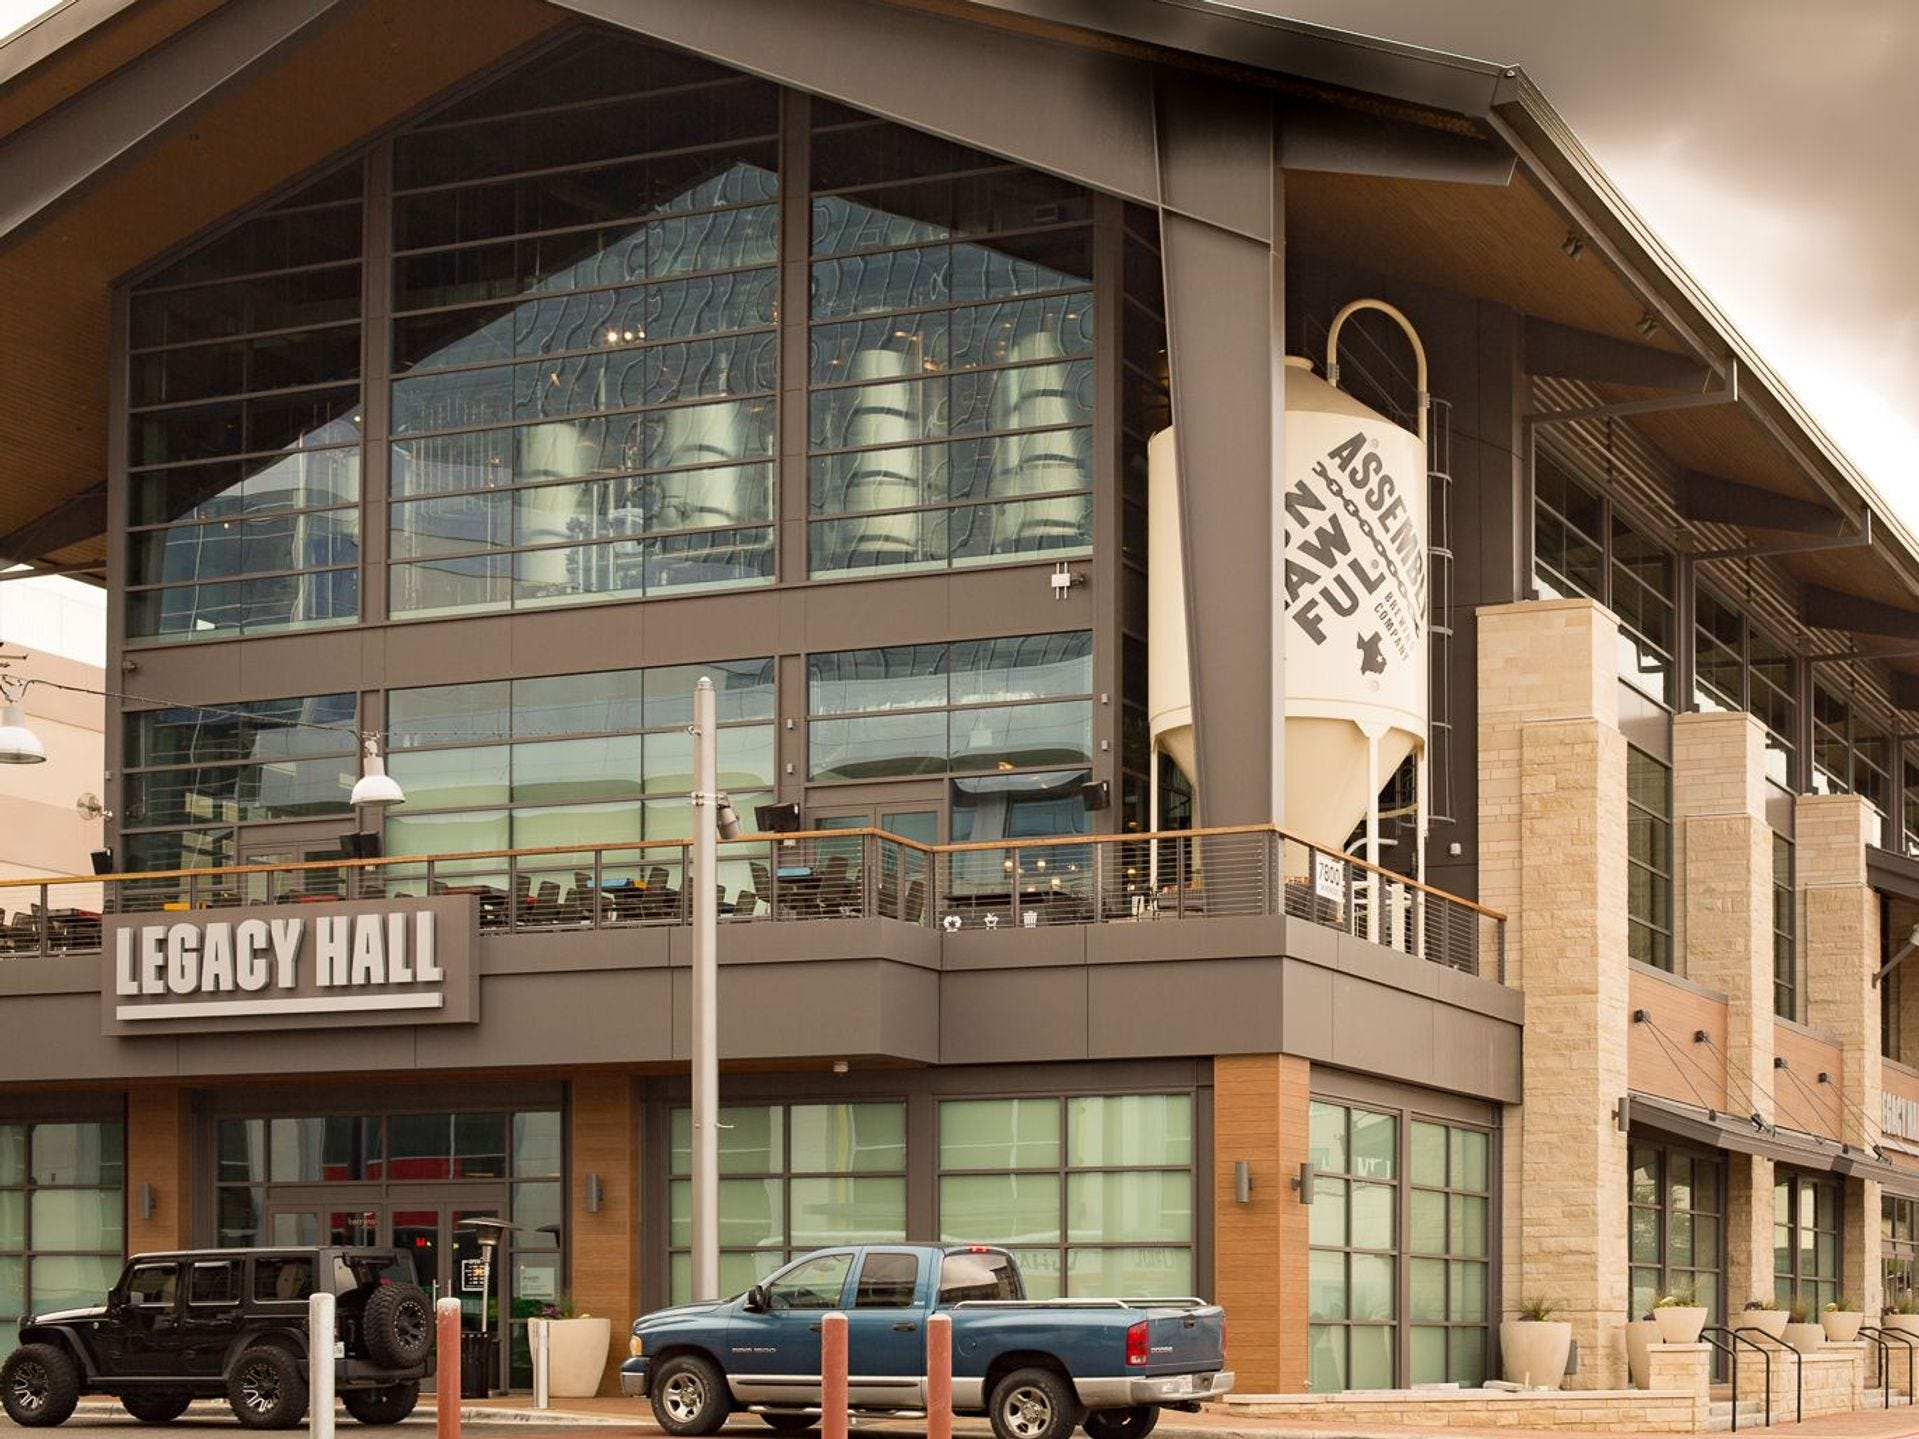 Legacy Hall is major food hall that opened in Dallas a year ago, complete with the first location of Knife burger - and a full working brewery.